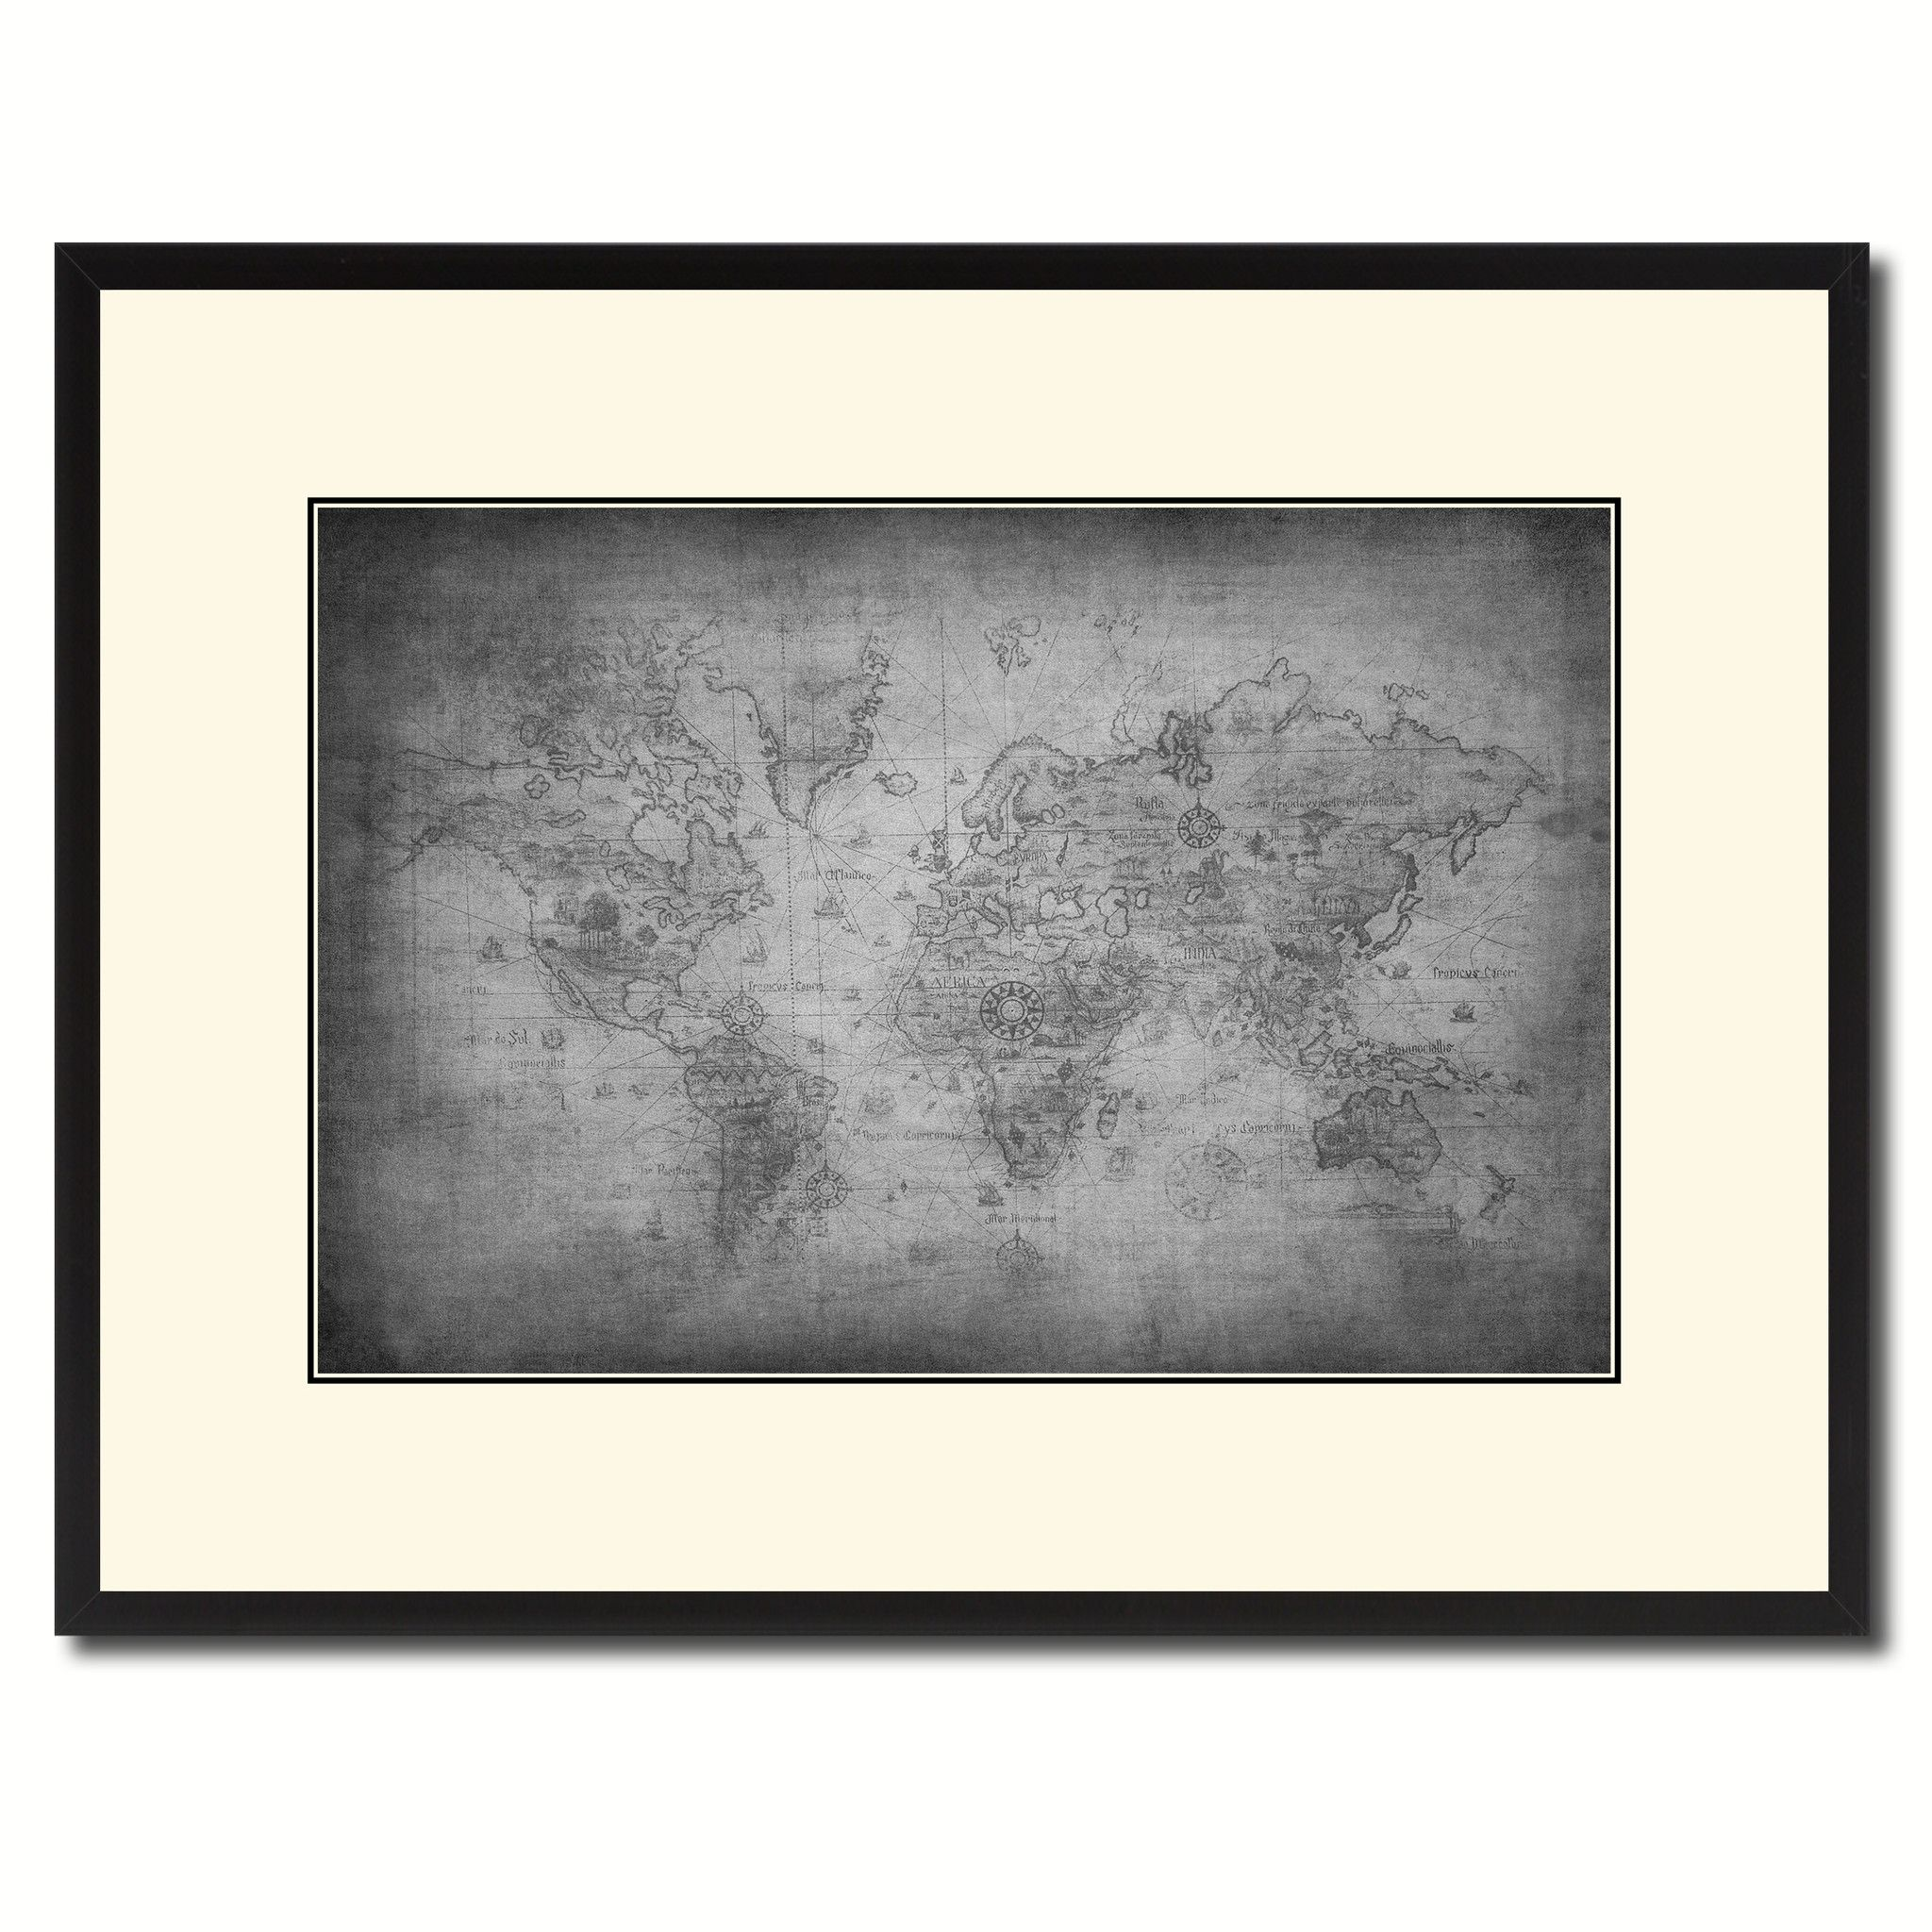 Home interiors and gifts framed art - Ancient World Vintage B W Map Canvas Print Picture Frame Home Decor Wall Art Gift Ideas